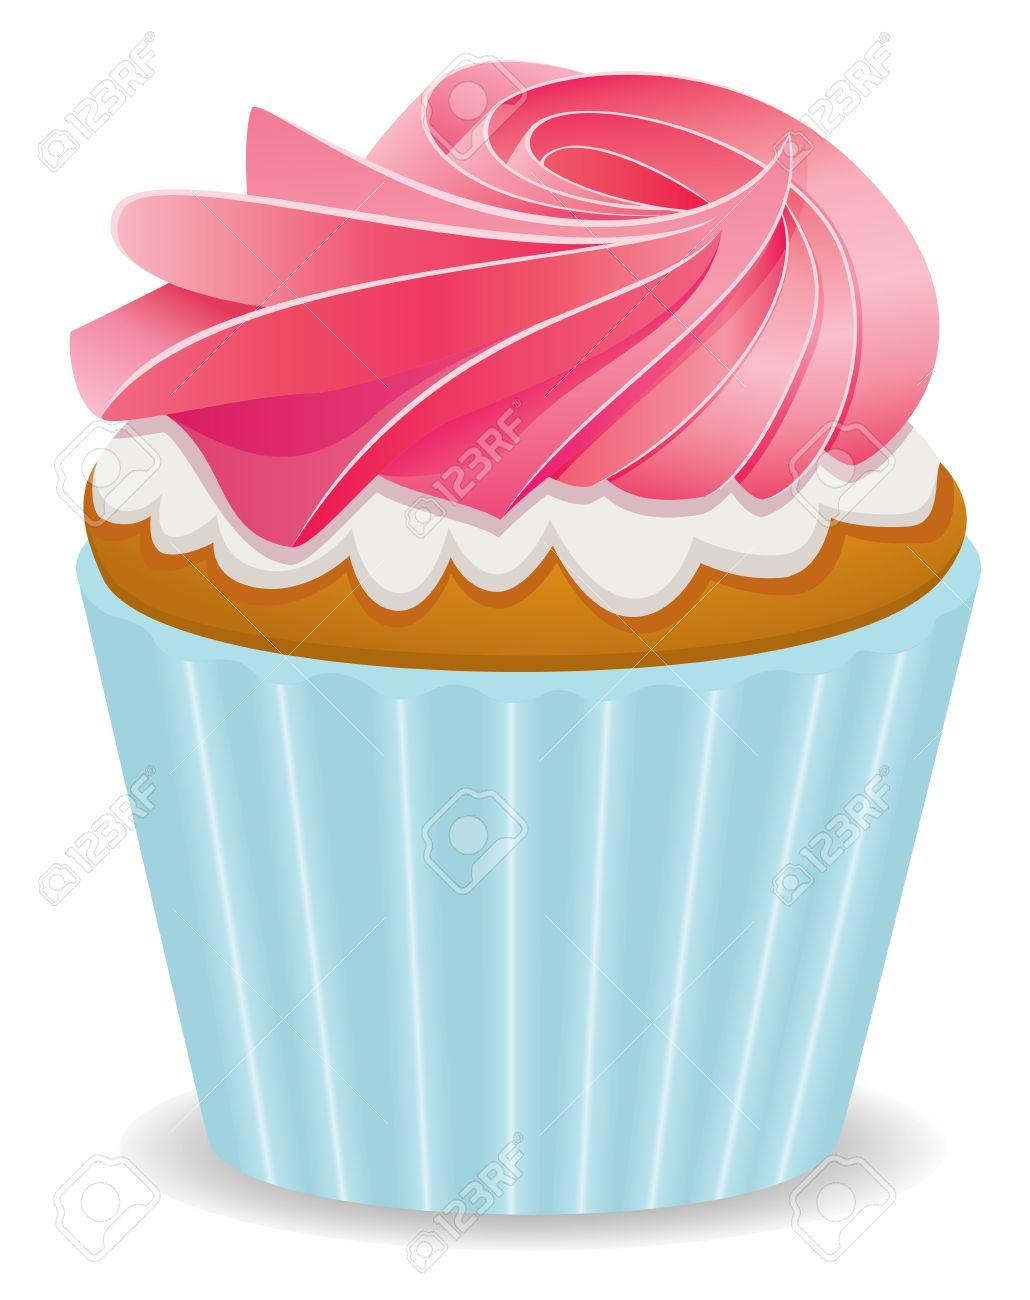 Fairy cakes clipart » Clipart Station.